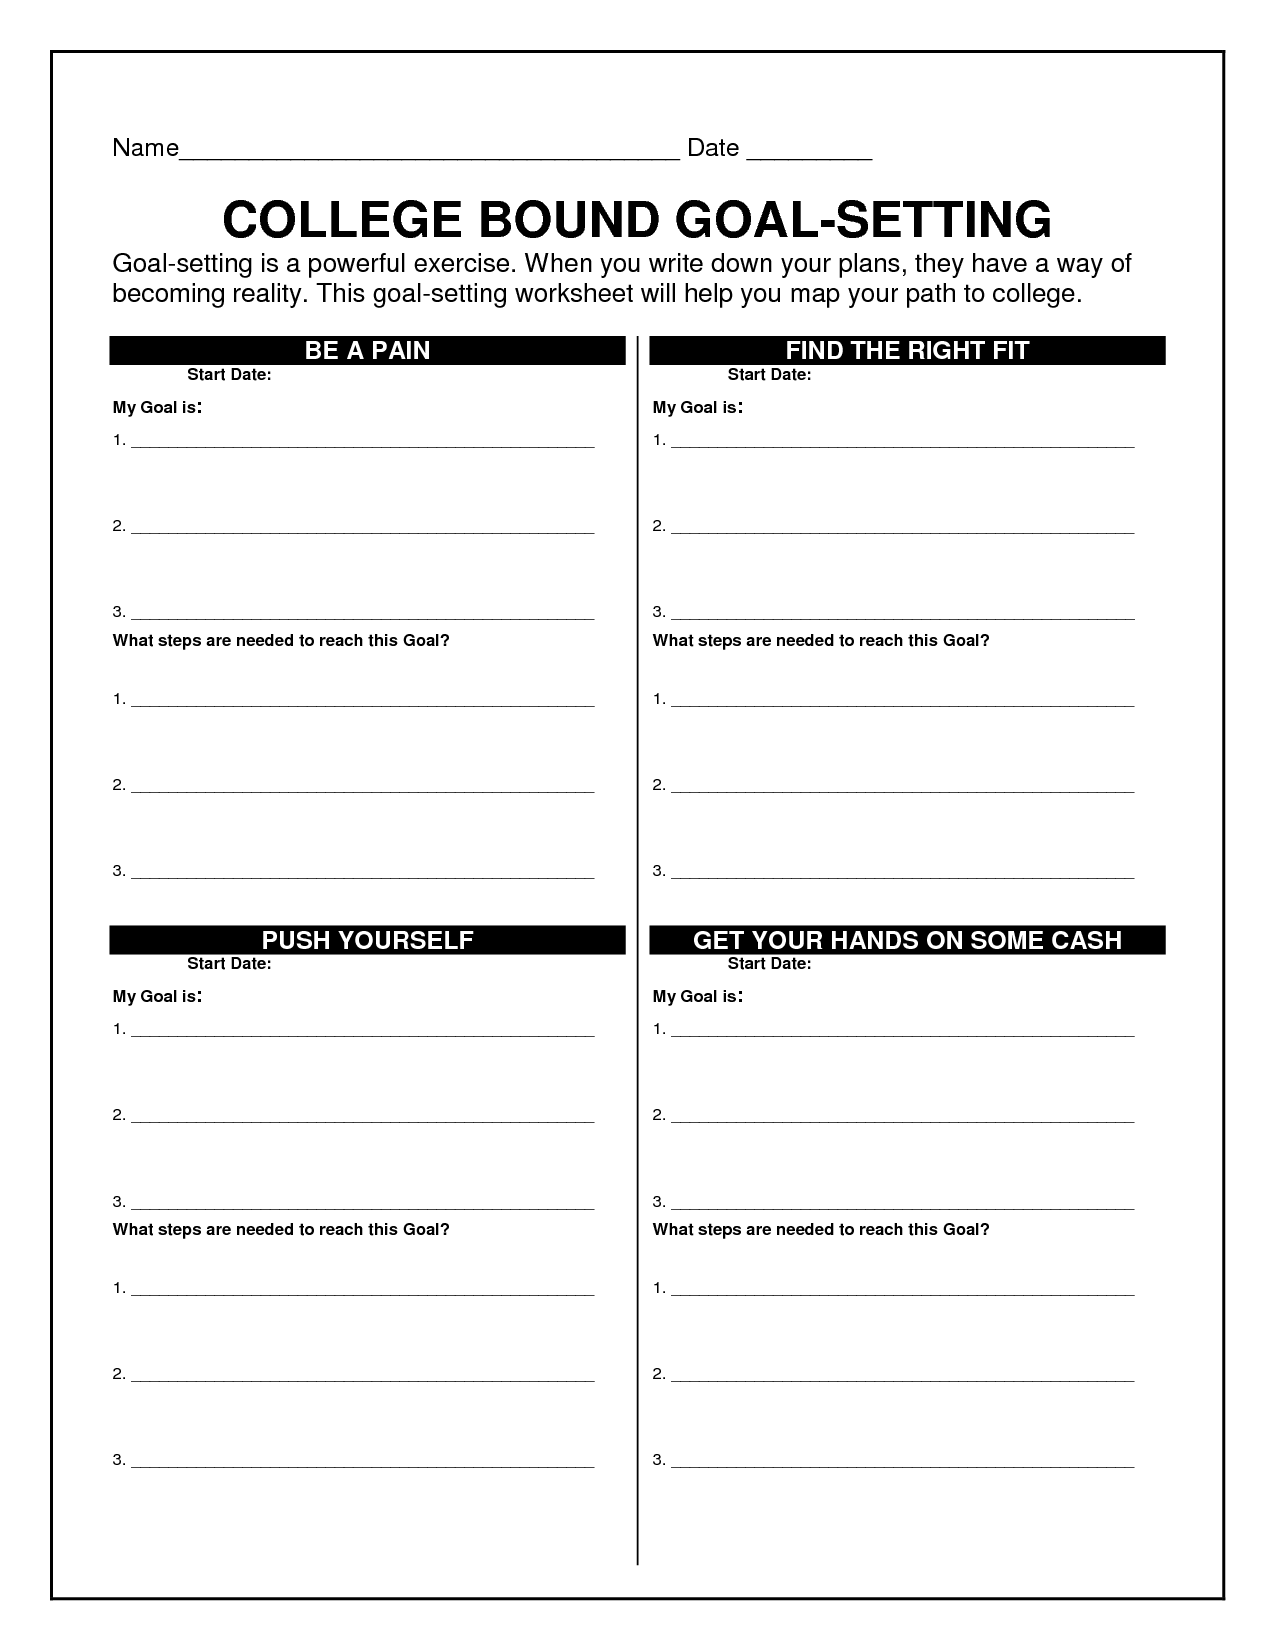 Professional Athlete Financial Planning Worksheet